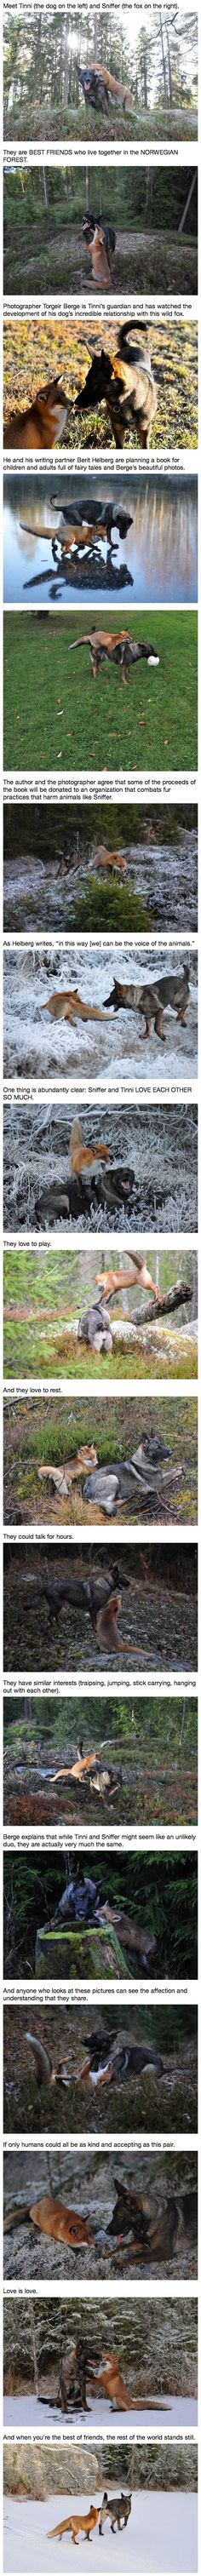 "Real life fox and the hound. ""Can't We All Get Along?"".  We humans can extract a lesson from them."